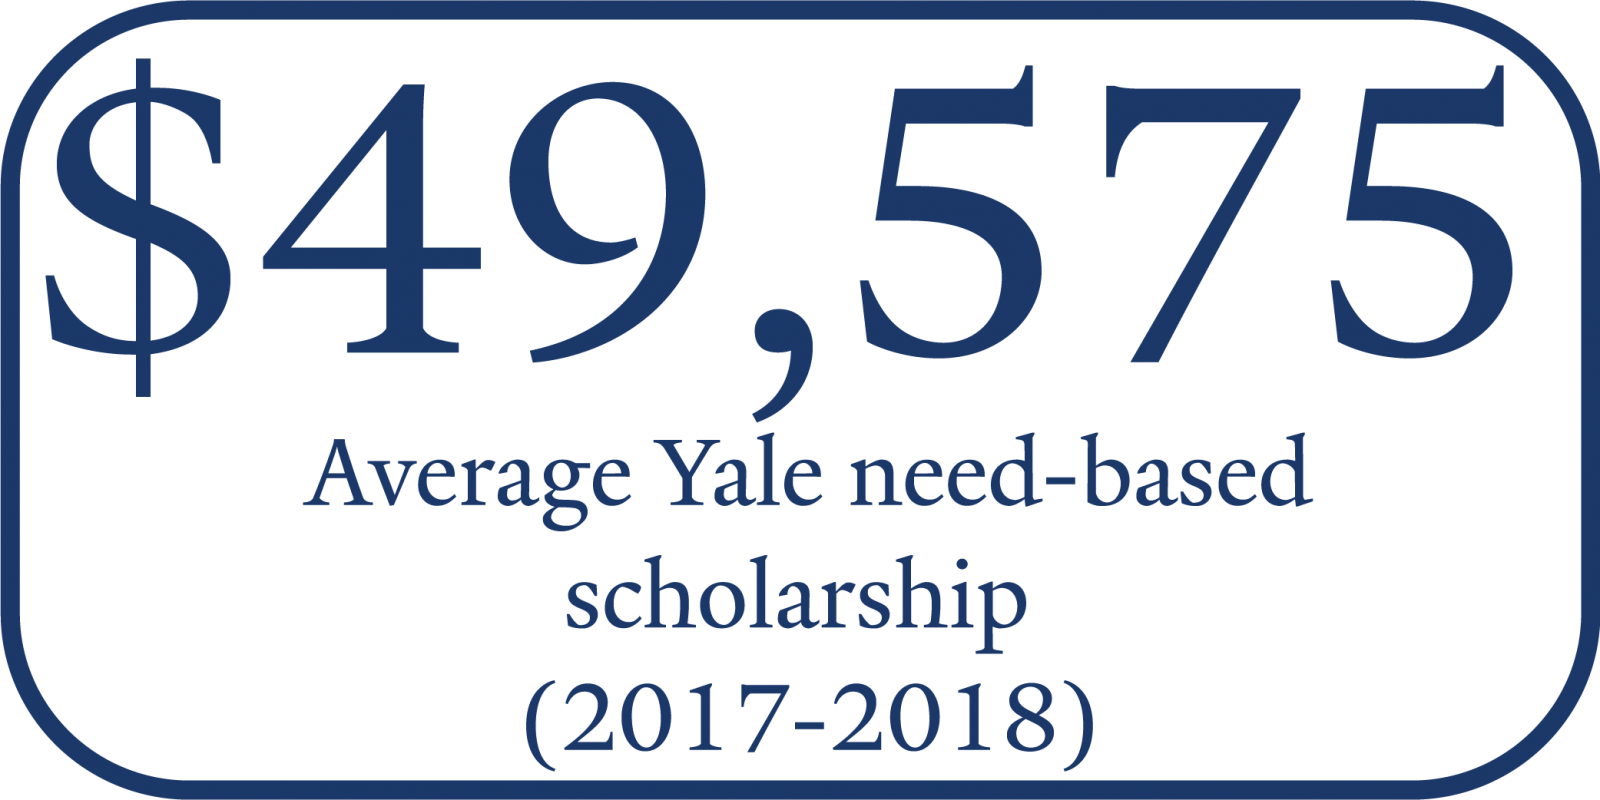 Average Yale need-baseed scholarship 2017-18 = $49,575